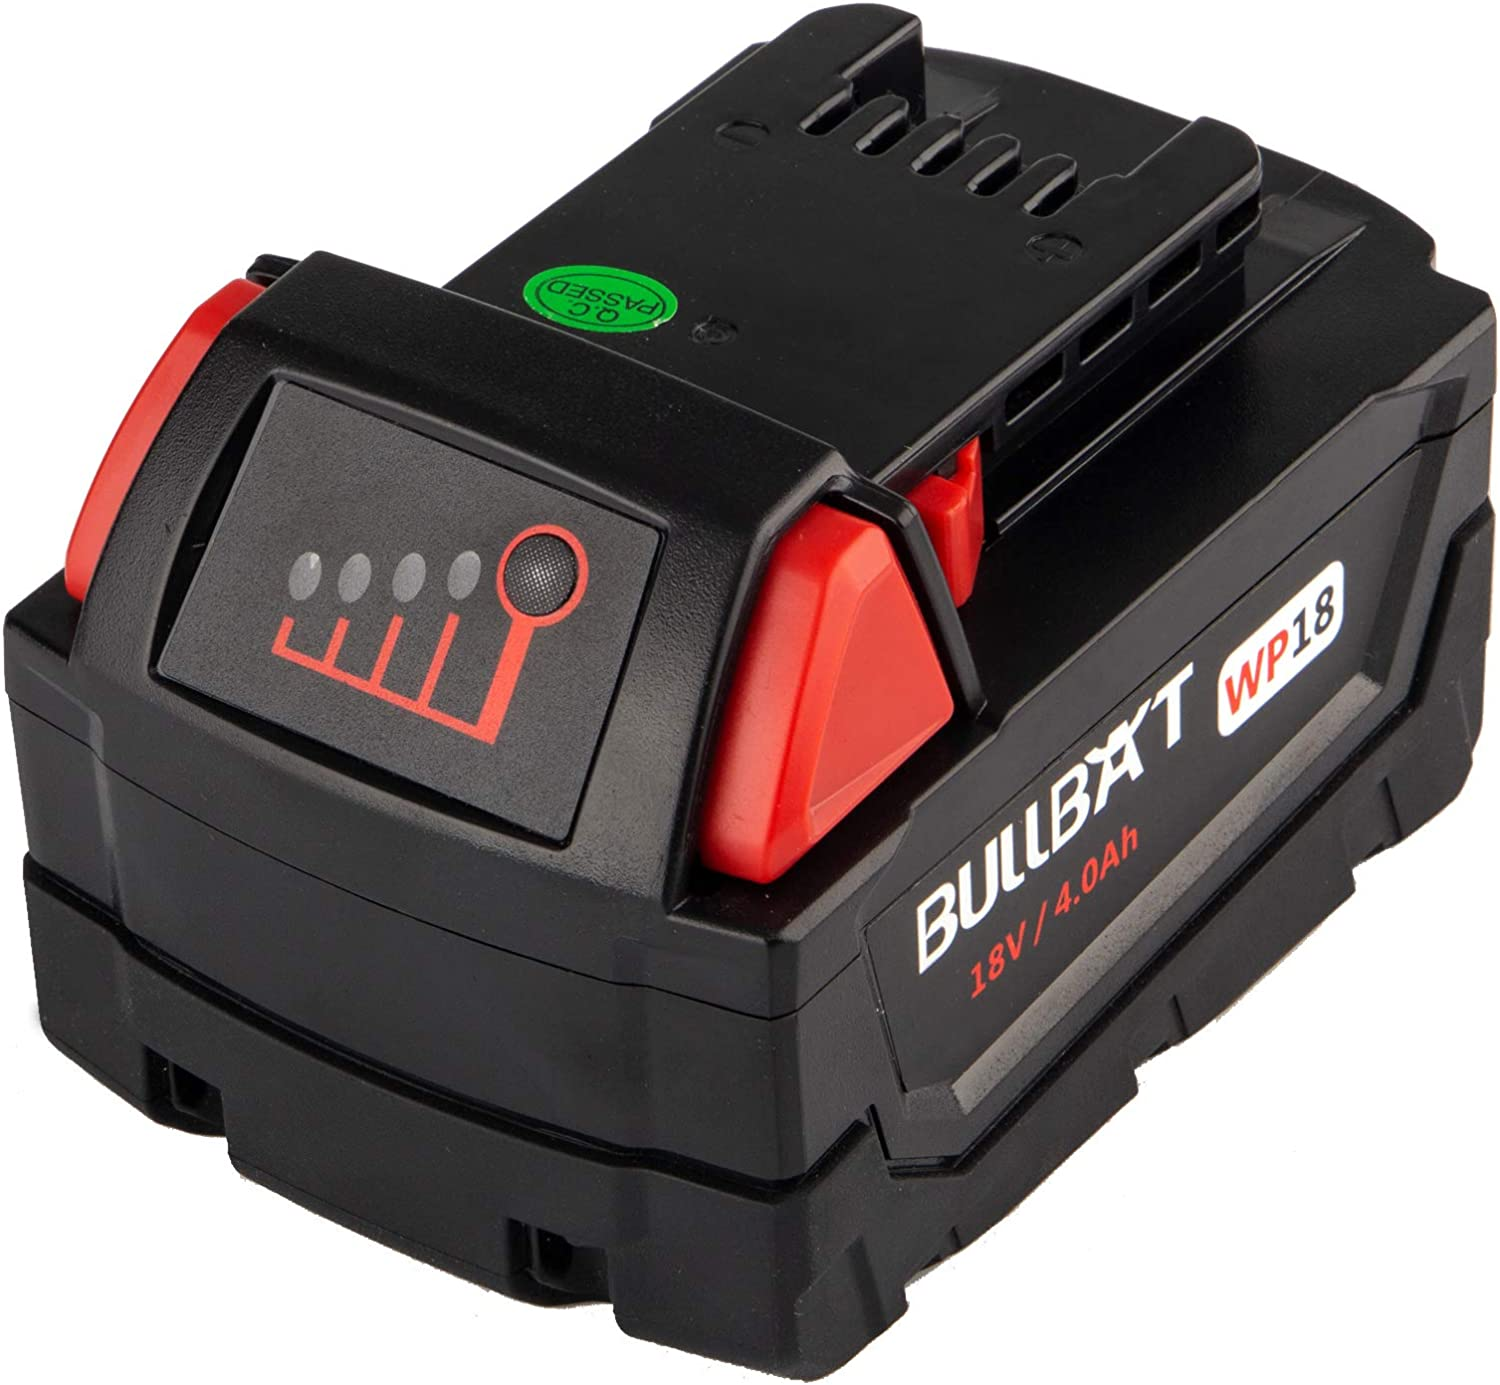 BULLBAT 18 Overseas parallel import regular item Volt MAX 4.0Ah excellence Batter Replacement Battery Lithium for